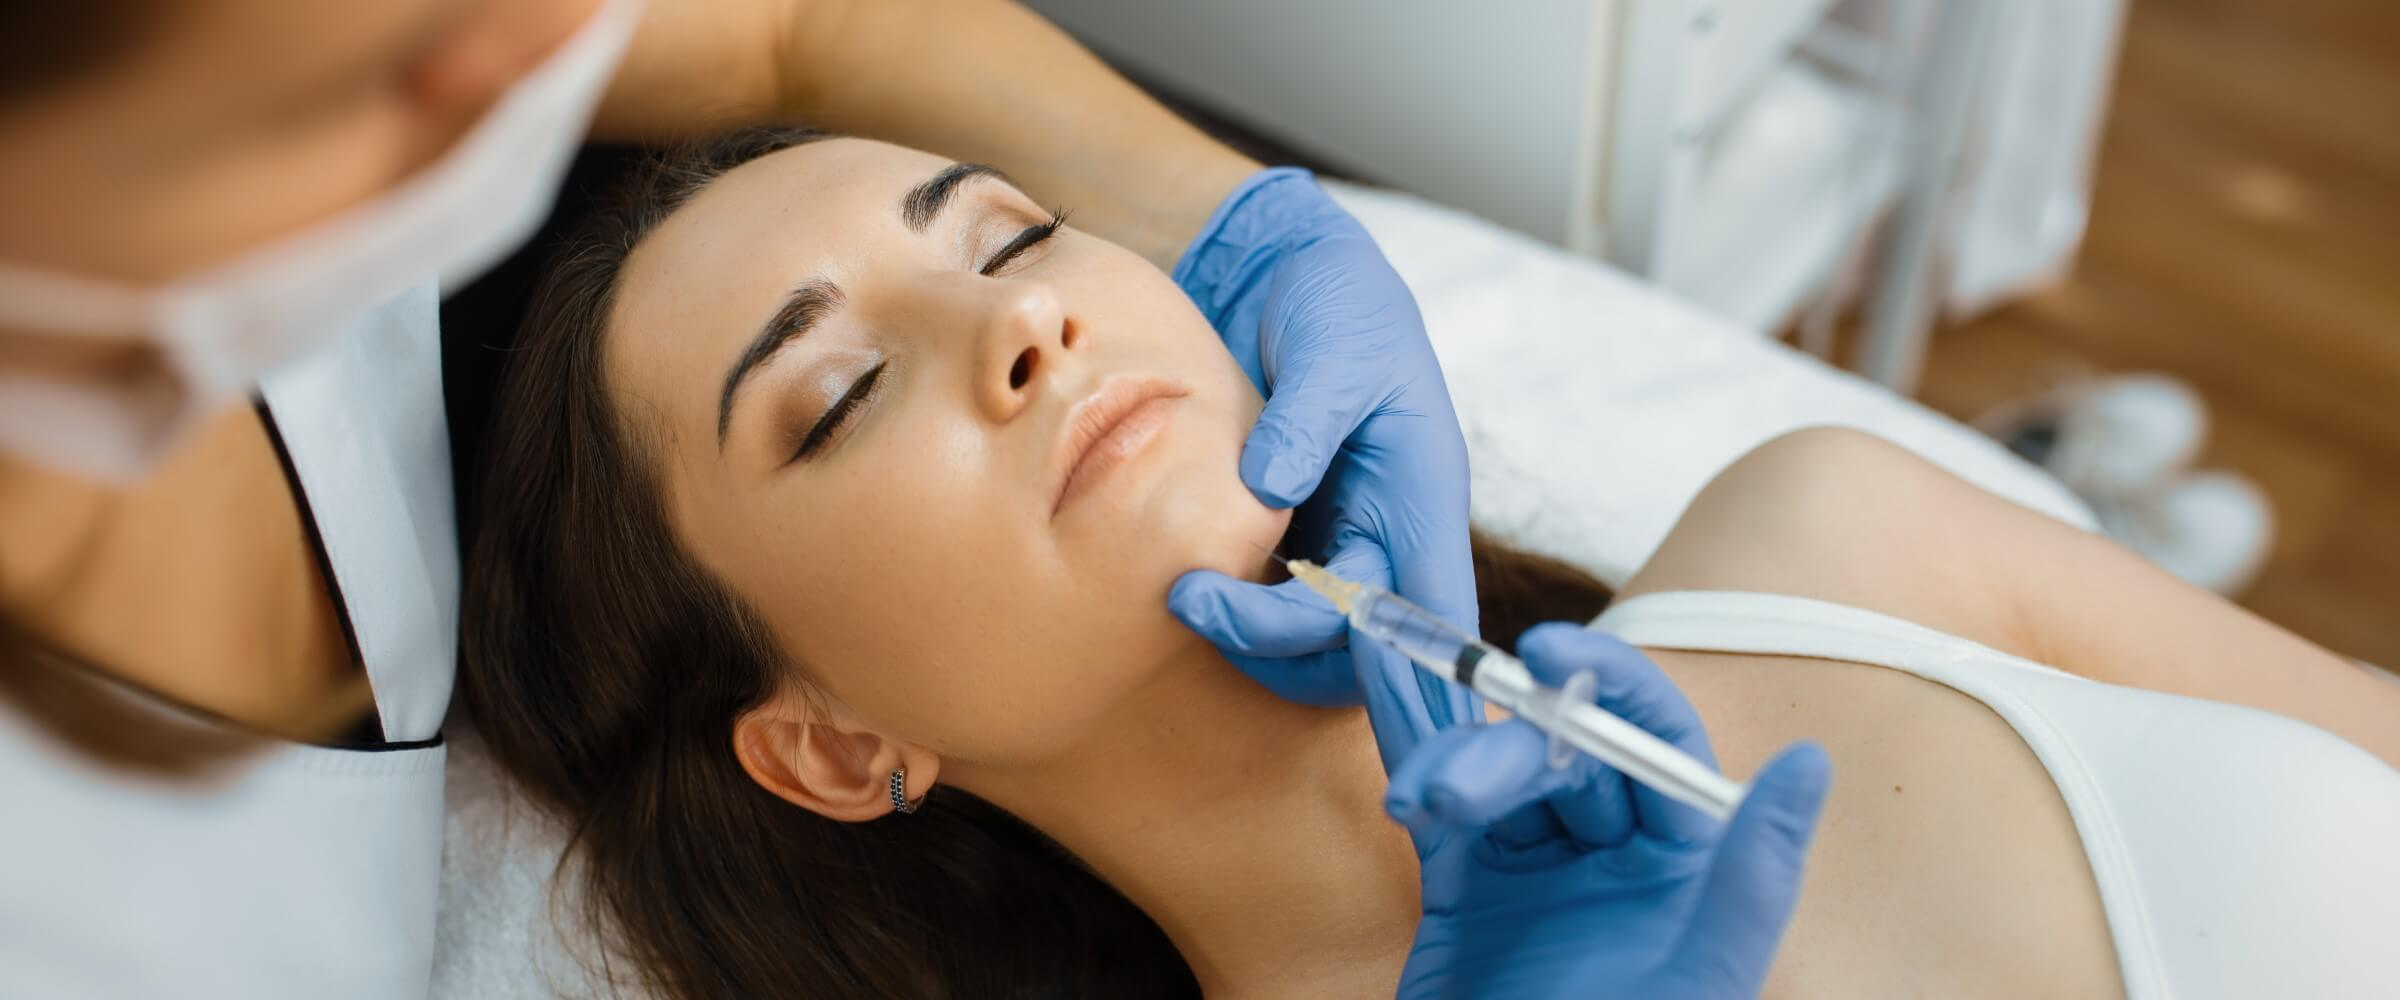 cosmetic injections in chin